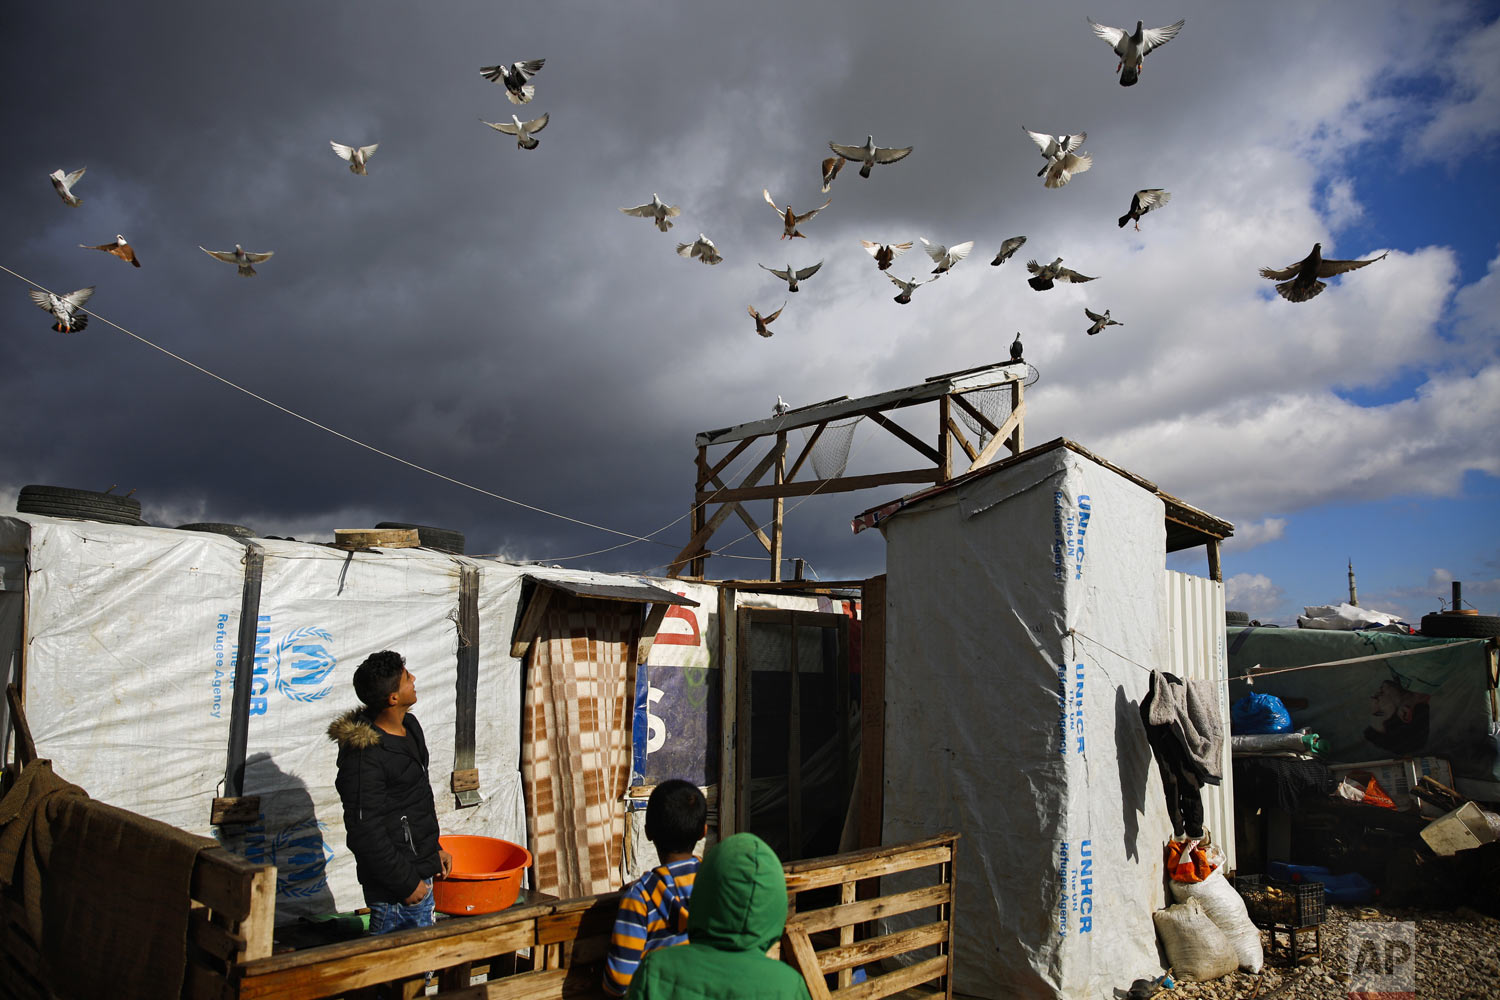 A boy watches his pigeons fly at an informal refugee camp in Zahle city in the eastern Bekaa valley, Lebanon, Monday, Dec. 31, 2018. Temperatures in Bekaa valley took a dip reaching zero degrees Celsius (32 degrees Fahrenheit) Monday early morning. (AP Photo/Hassan Ammar)